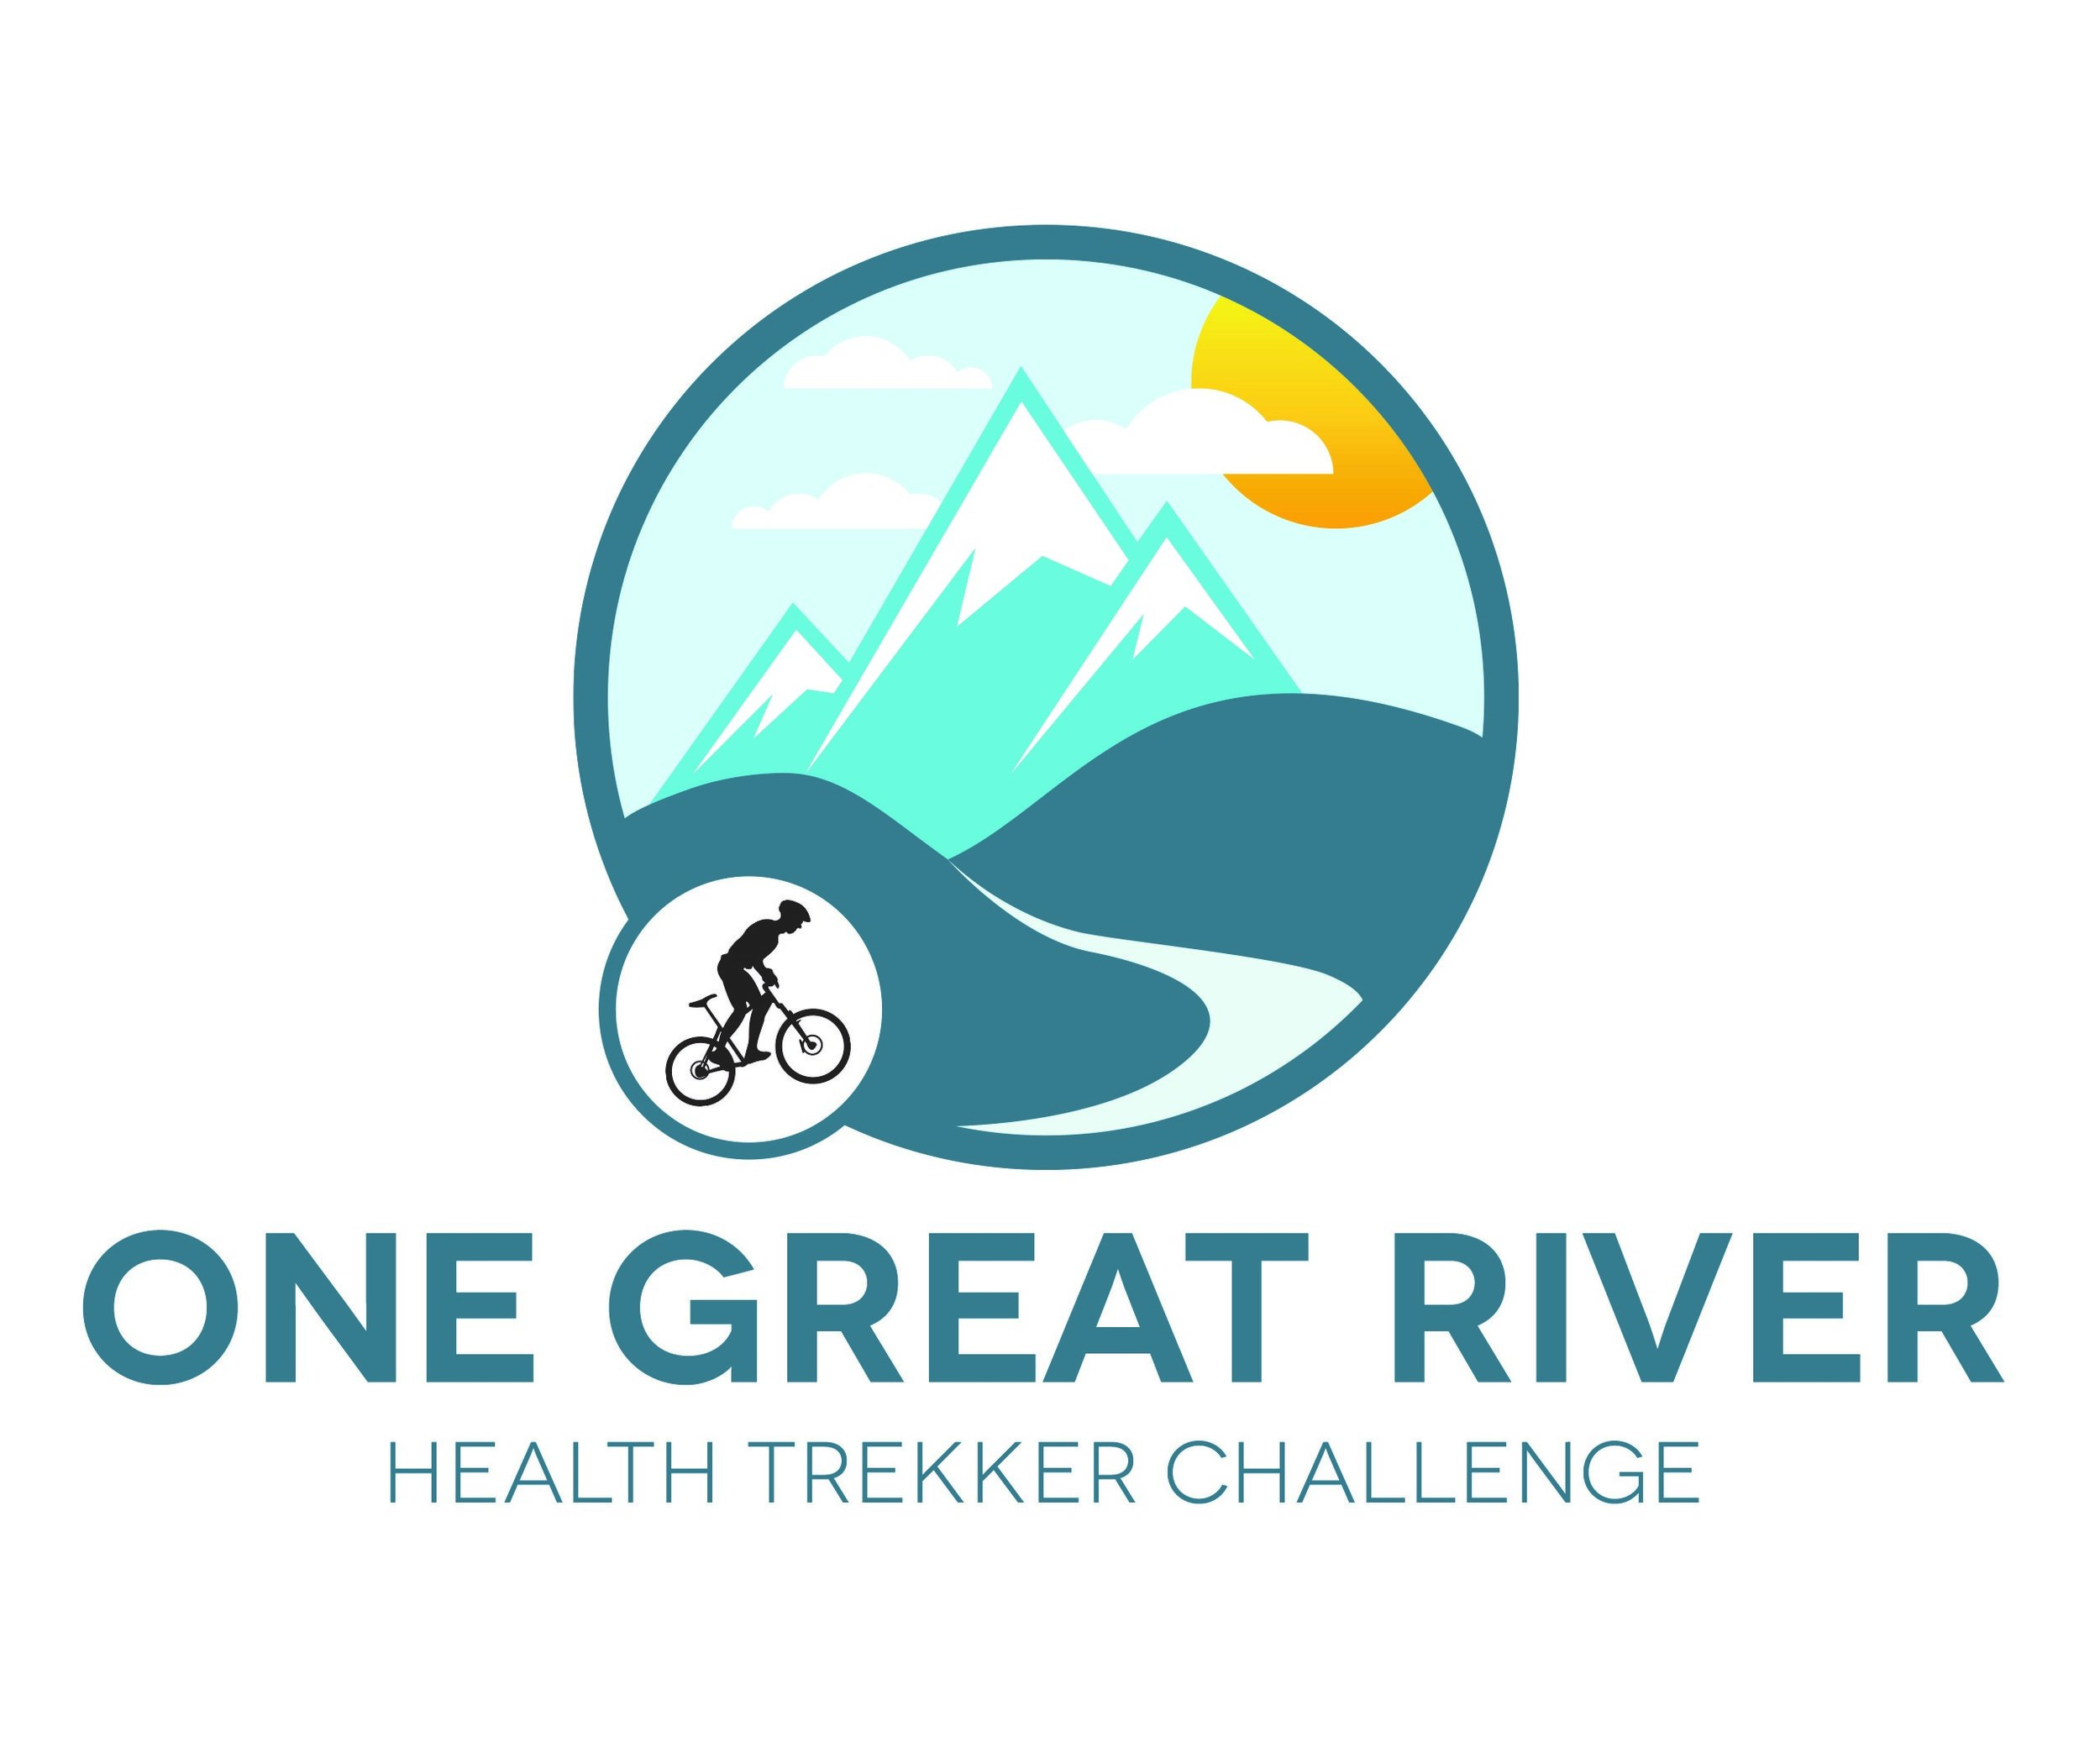 One Great River: Health Trekker Challenge Grant